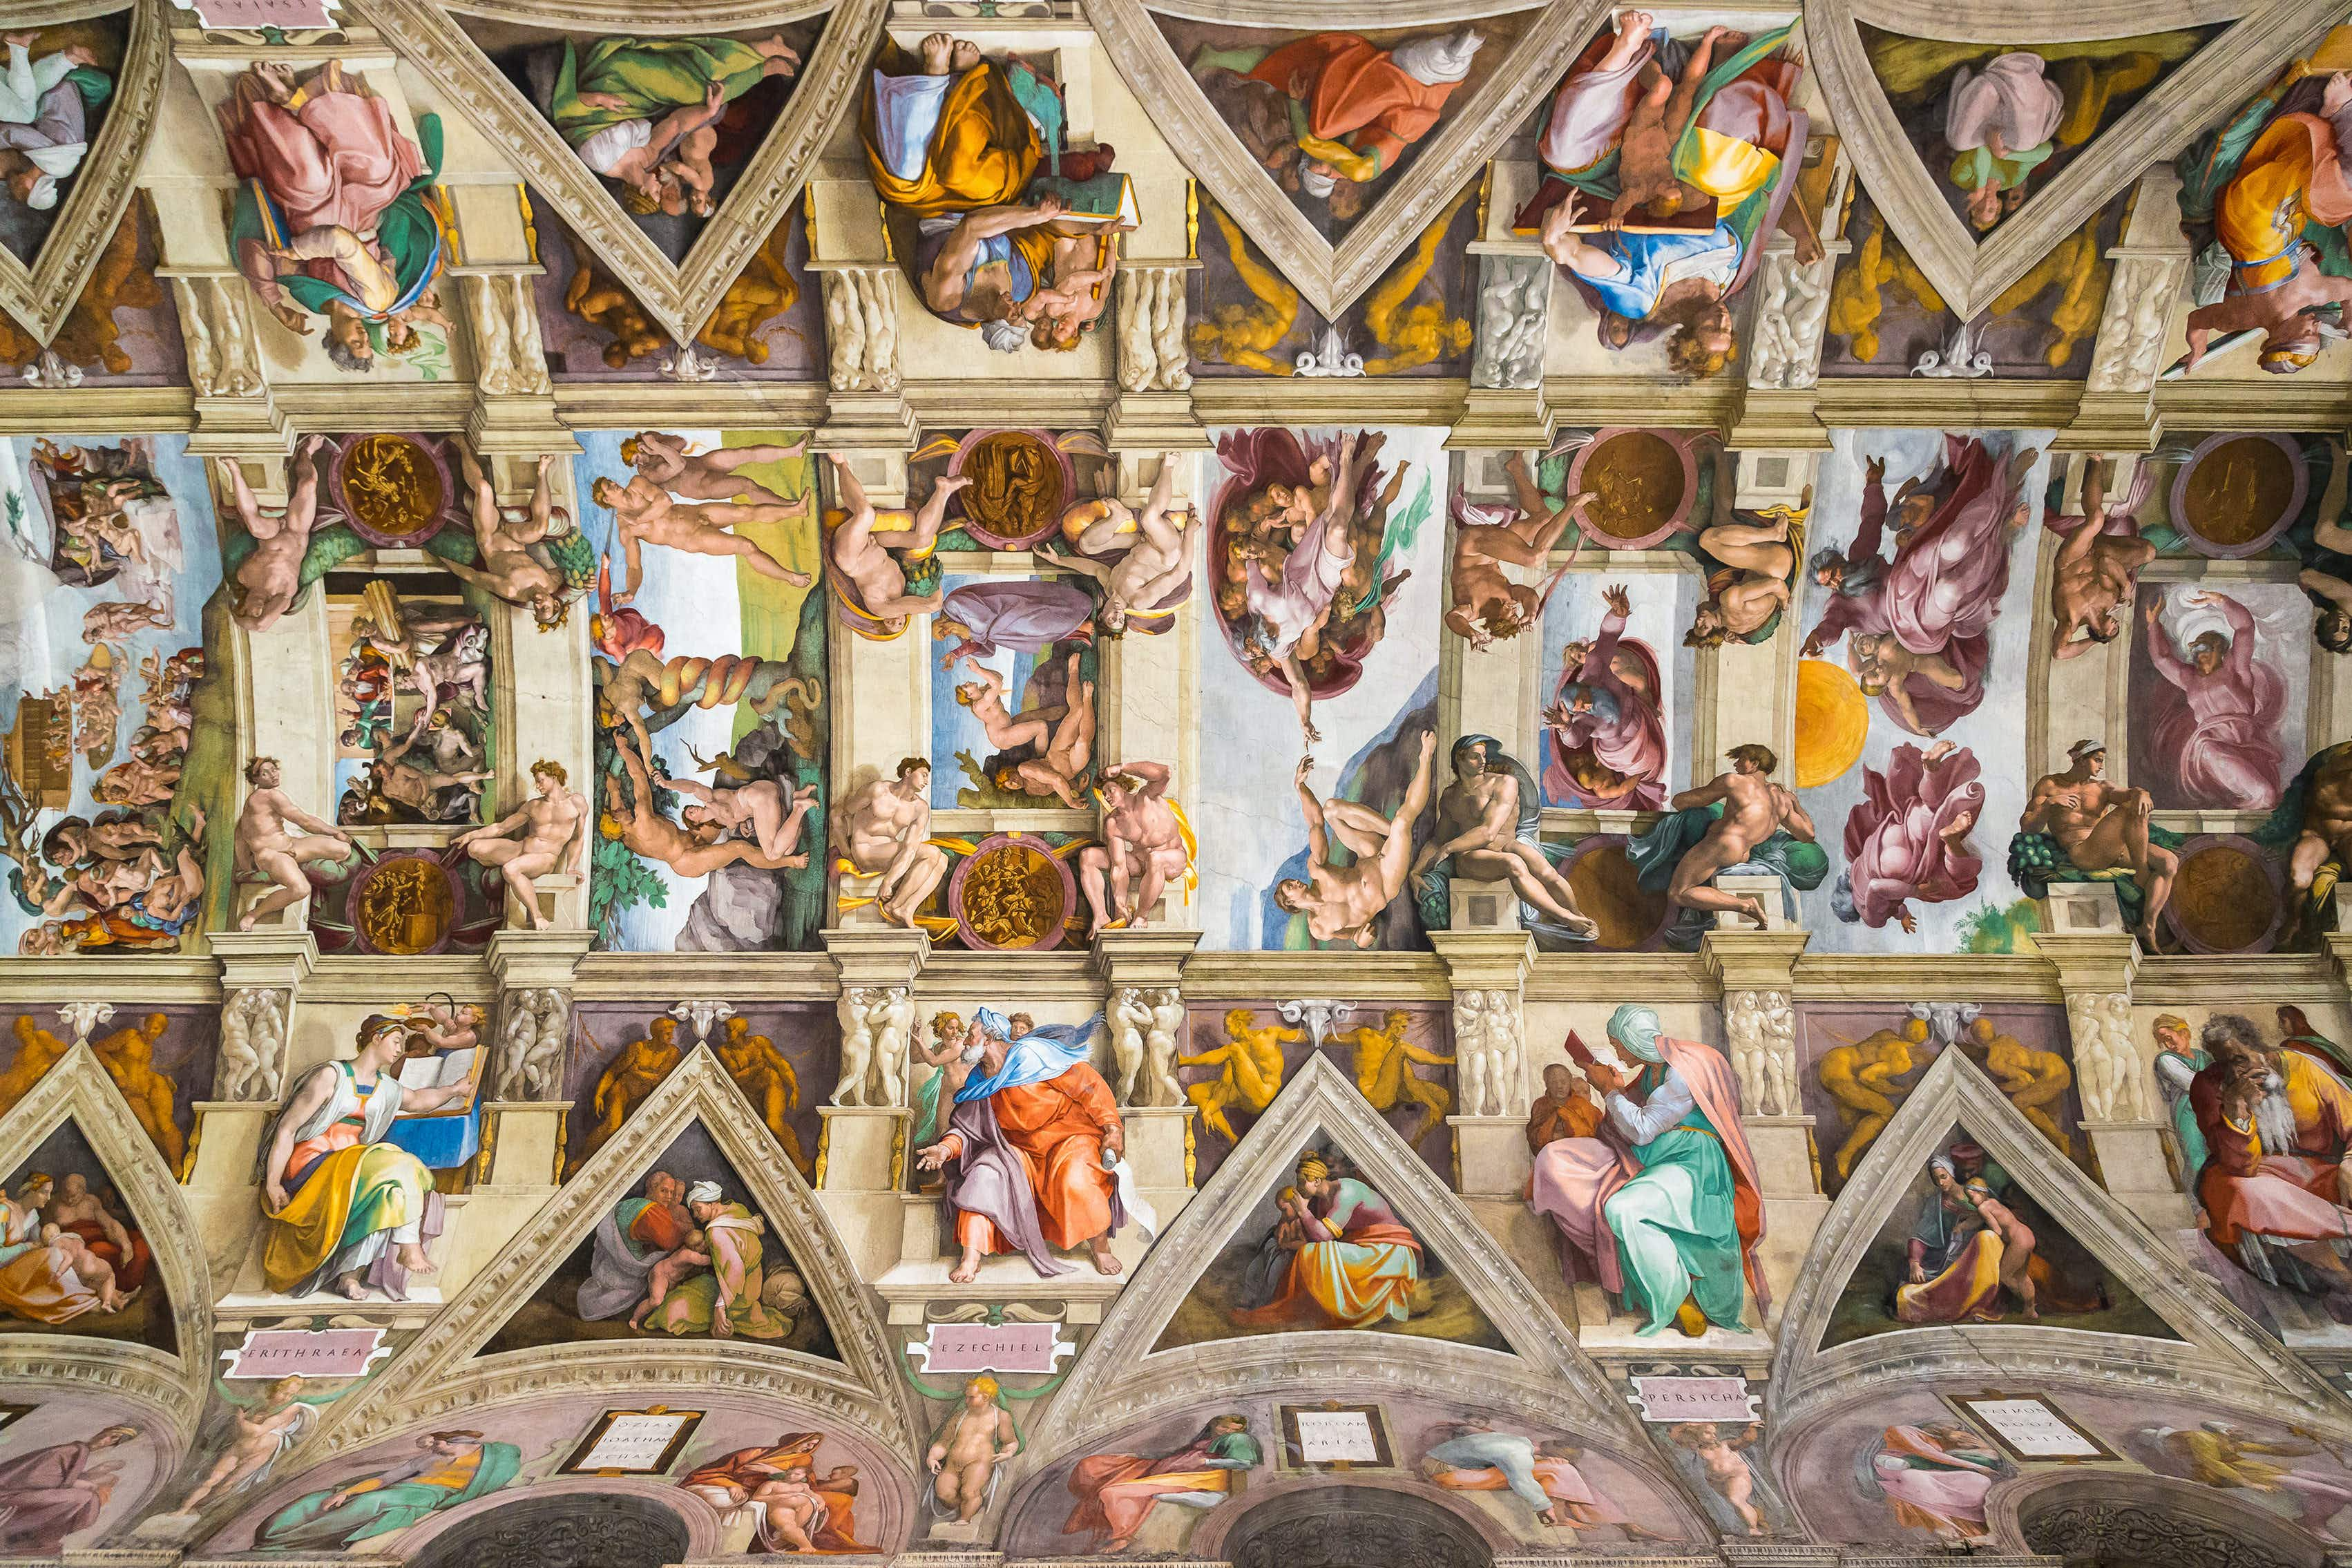 Ceiling of the Sistine chapel in the Vatican museum ©S-F/Shutterstock